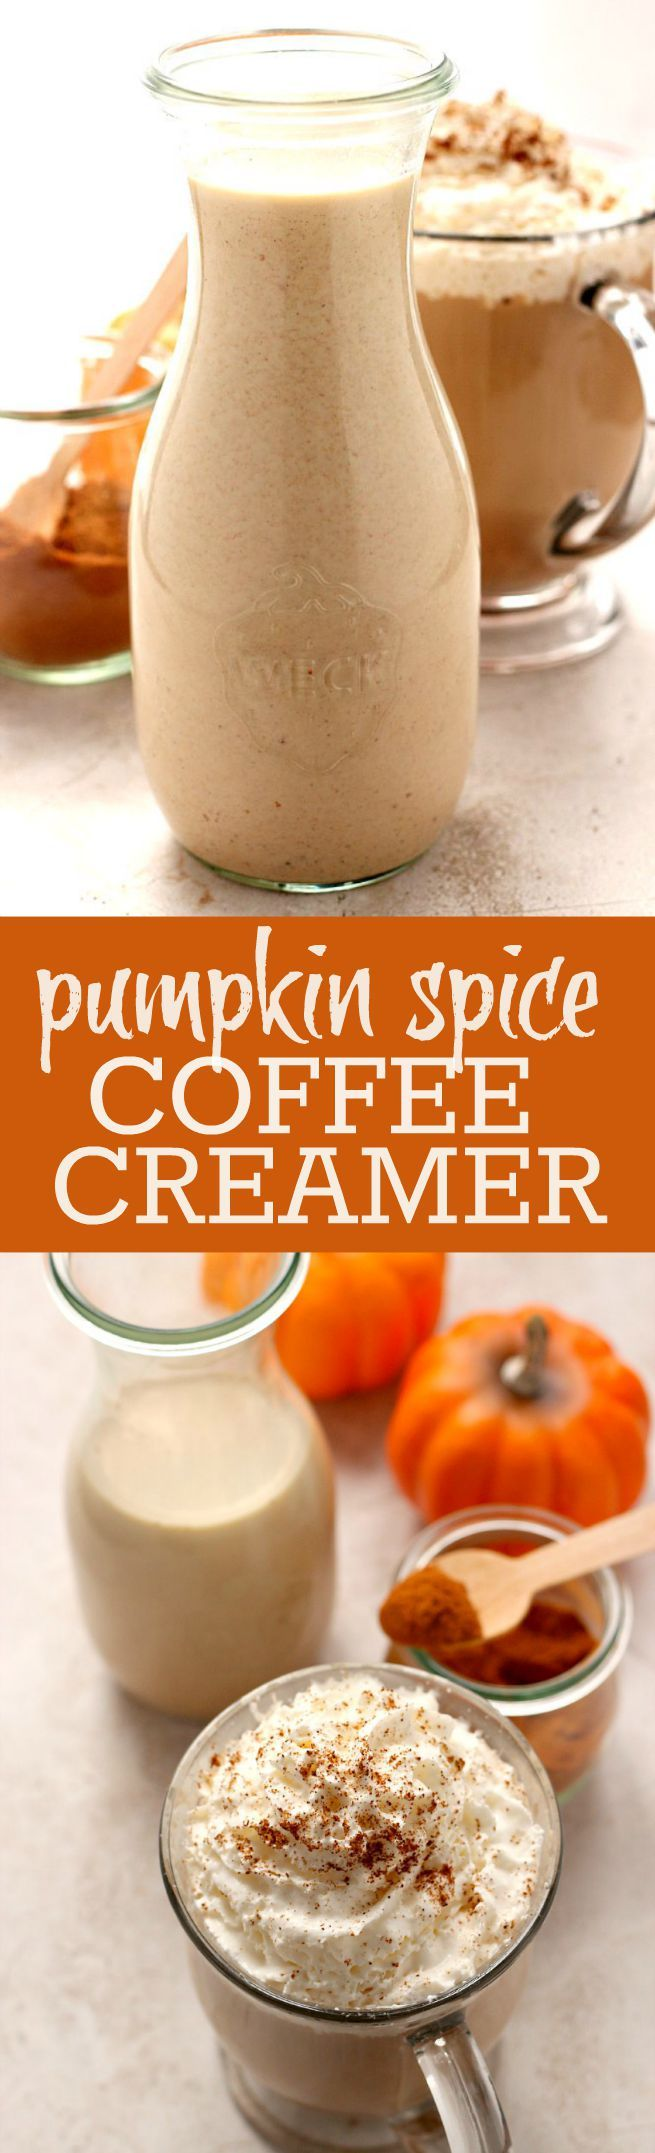 Homemade Pumpkin Spice Coffee Creamer - the easiest way to have a delicious cup of your favorite pumpkin spice latte made in your own kitchen! This creamer is crazy good!: